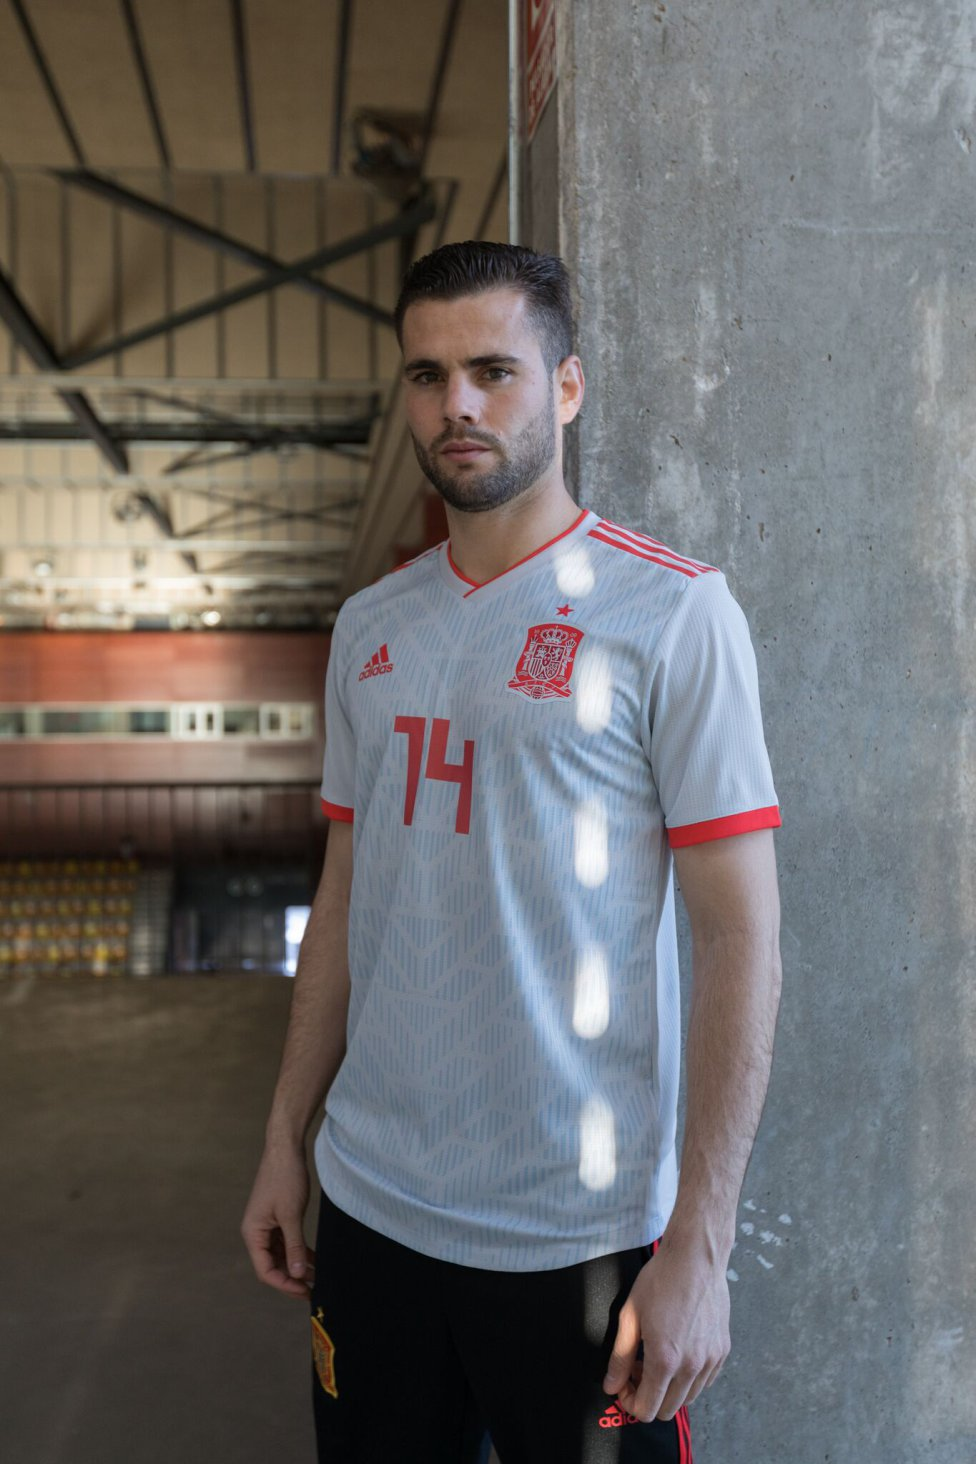 newest 160d7 f9c6b Spain unveil new Russia 2018 World Cup away kit - AS.com